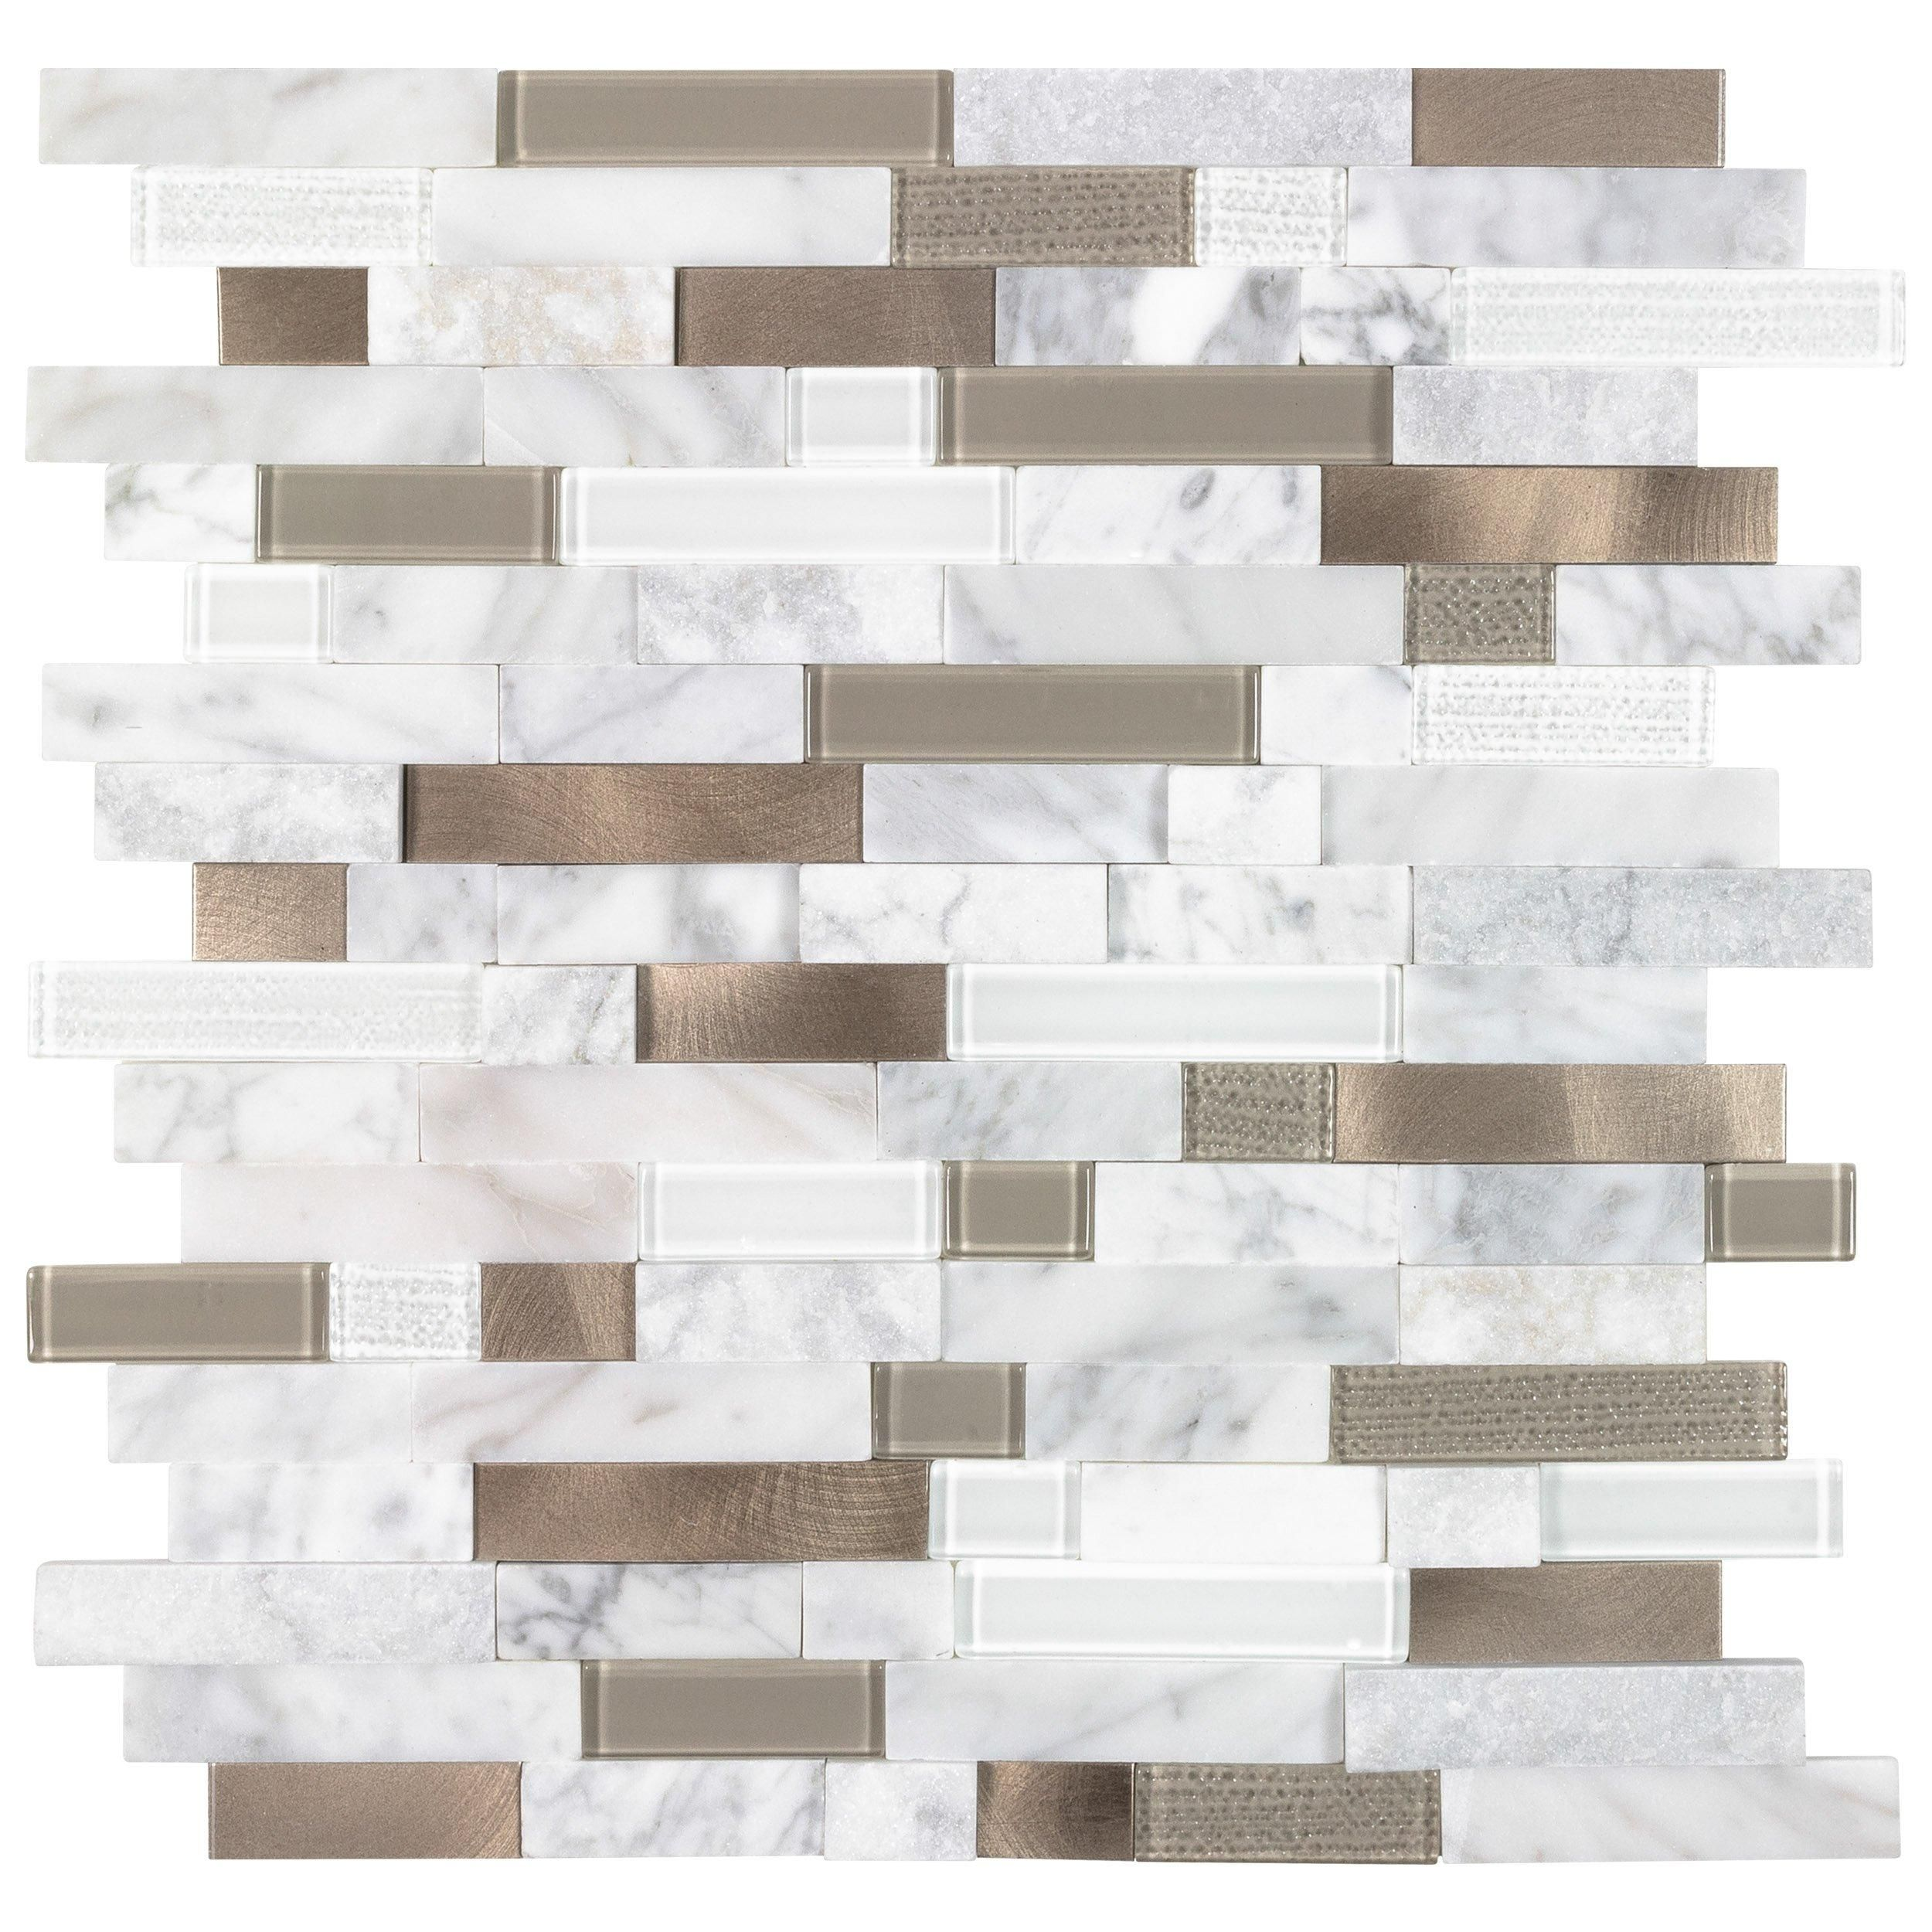 Wholesale Lot Many Color Glass Mosaic Tiles for DIY Craft School Mosaic Making